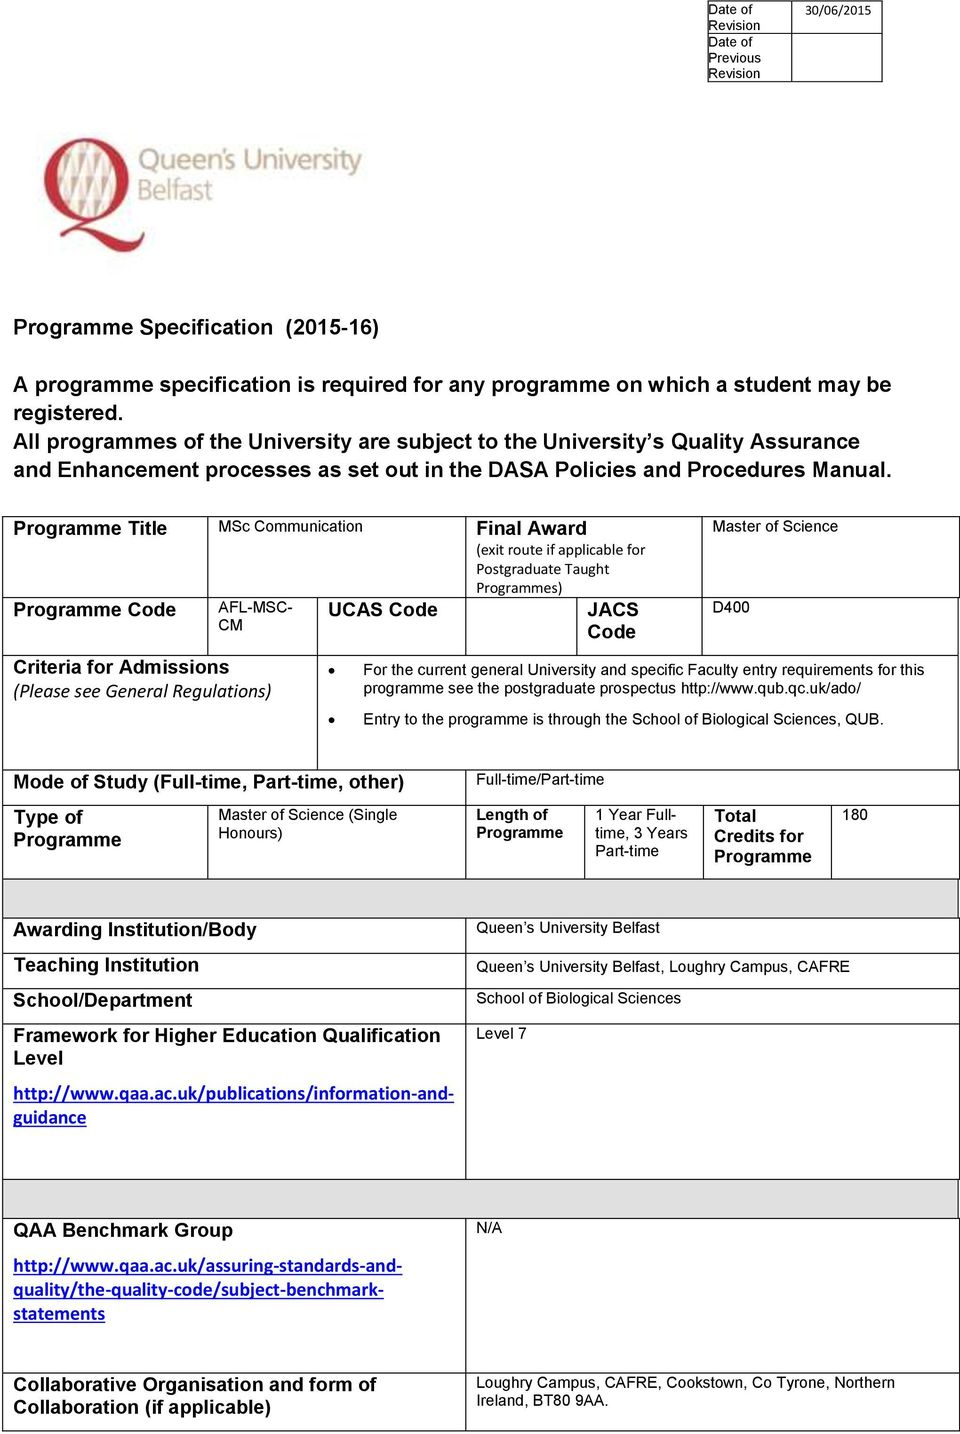 Programme Title MSc Communication Final Award (exit route if applicable for Postgraduate Taught Programmes) Programme Code AFL-MSC- CM Criteria for Admissions (Please see General Regulations) UCAS